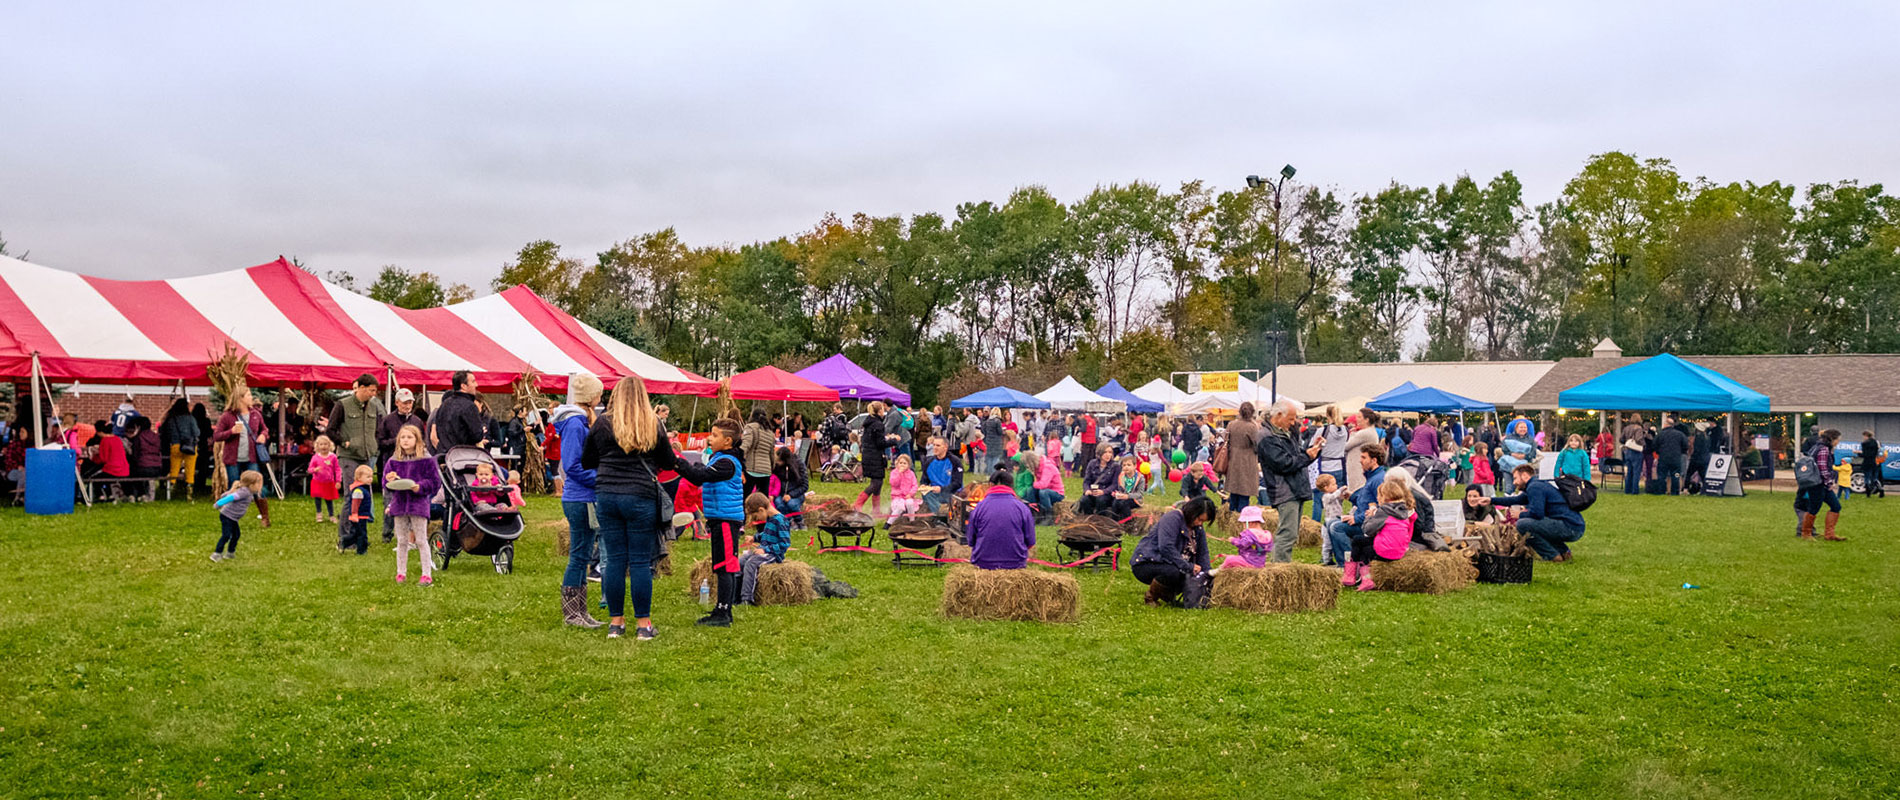 Events and Community Celebrations in Verona, WI - Fall Fest